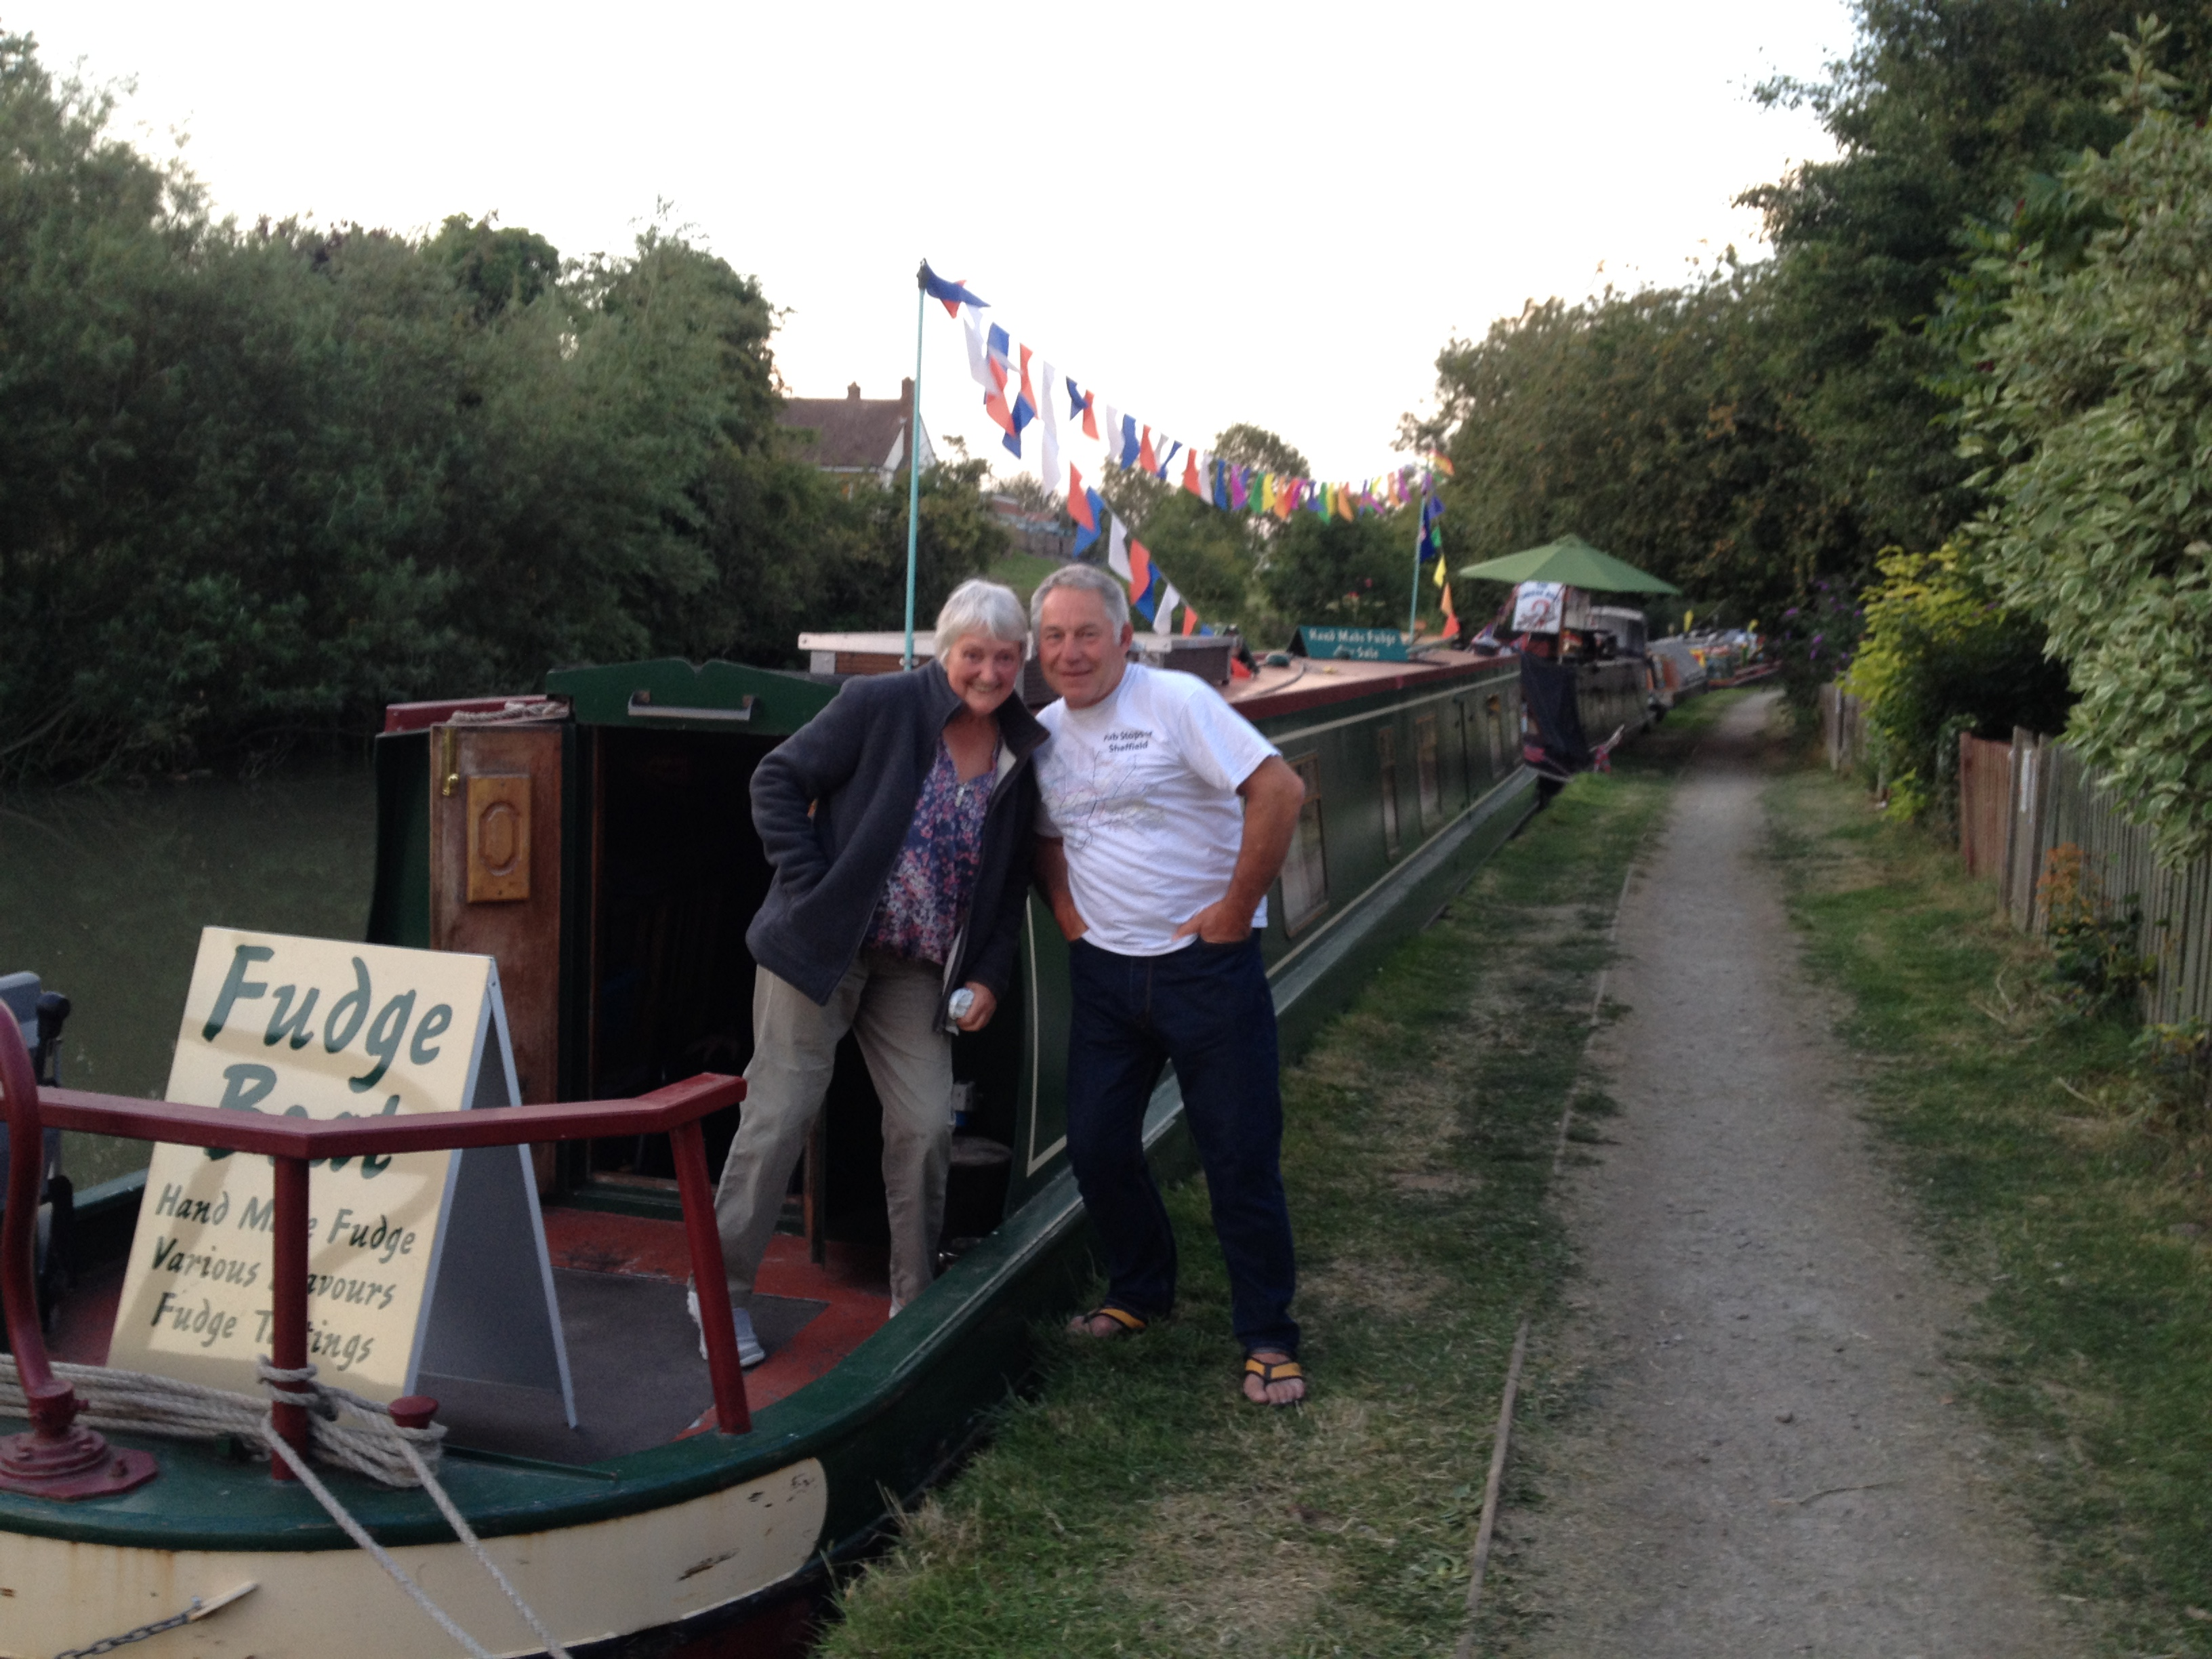 The Fudge Boat at Blisworth Canal Festival 2015